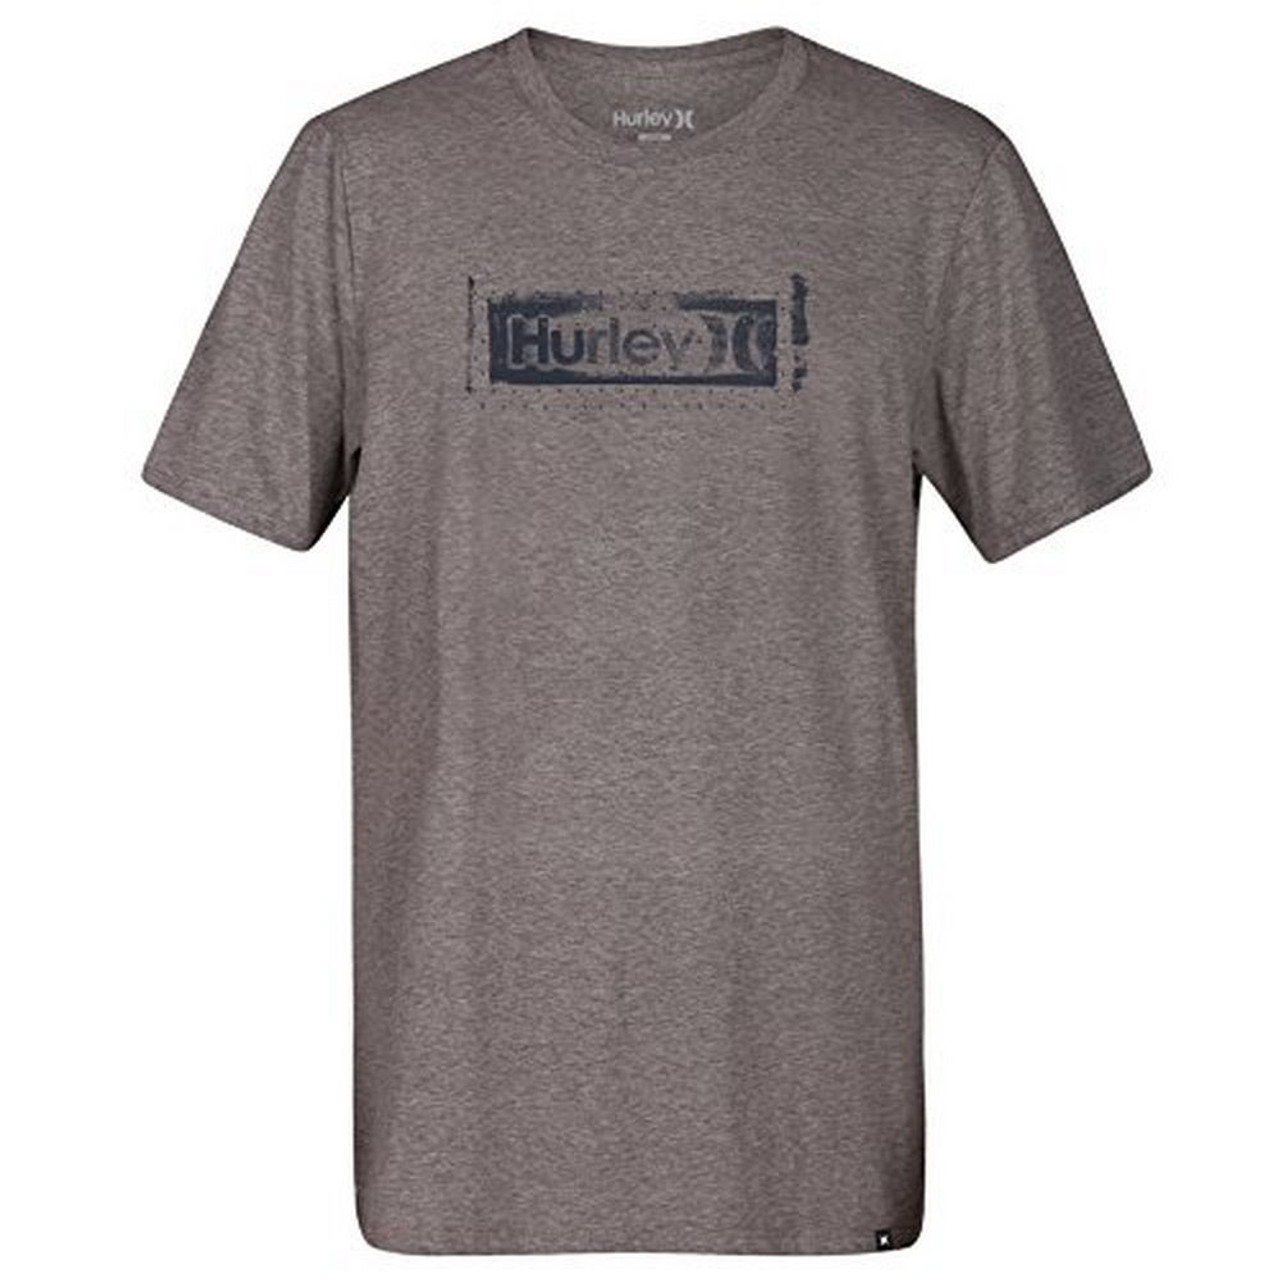 402bf1b53 Hurley Tee Shirt - One and Only Roller Dri-Fit - Dark Grey Heather ...